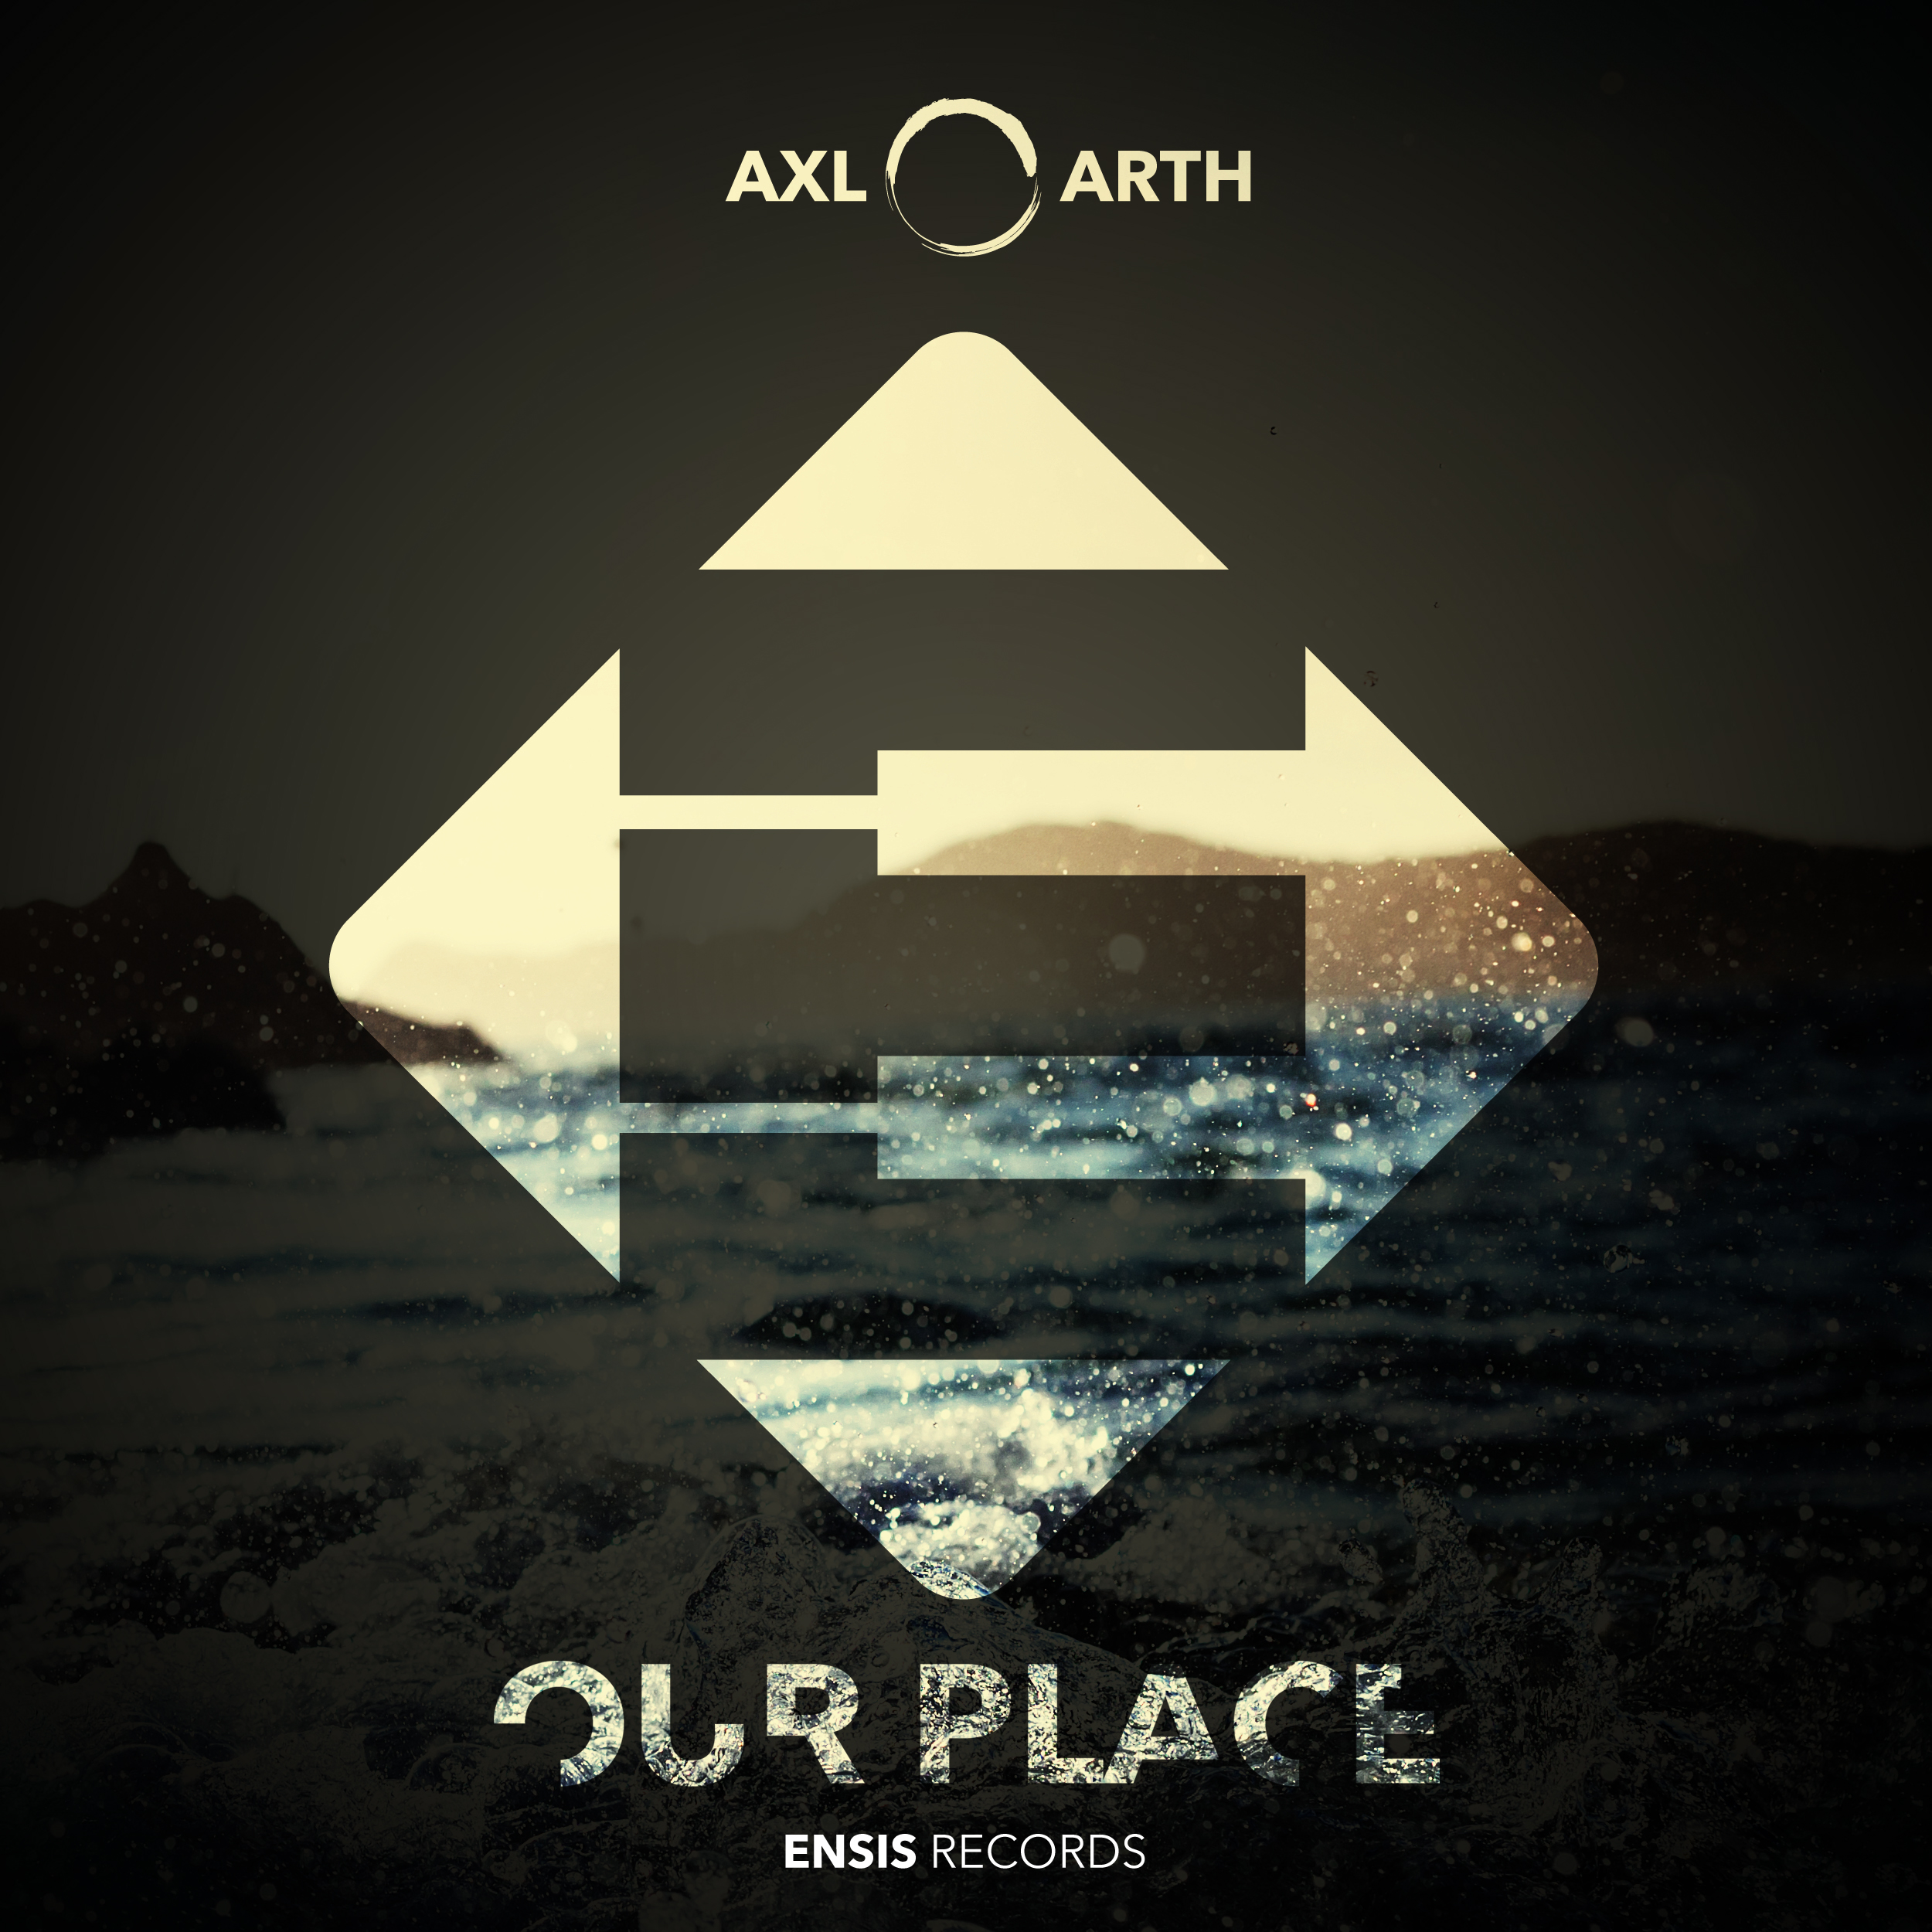 Axl & Arth – Our Place via Ensis Records [Free Download]